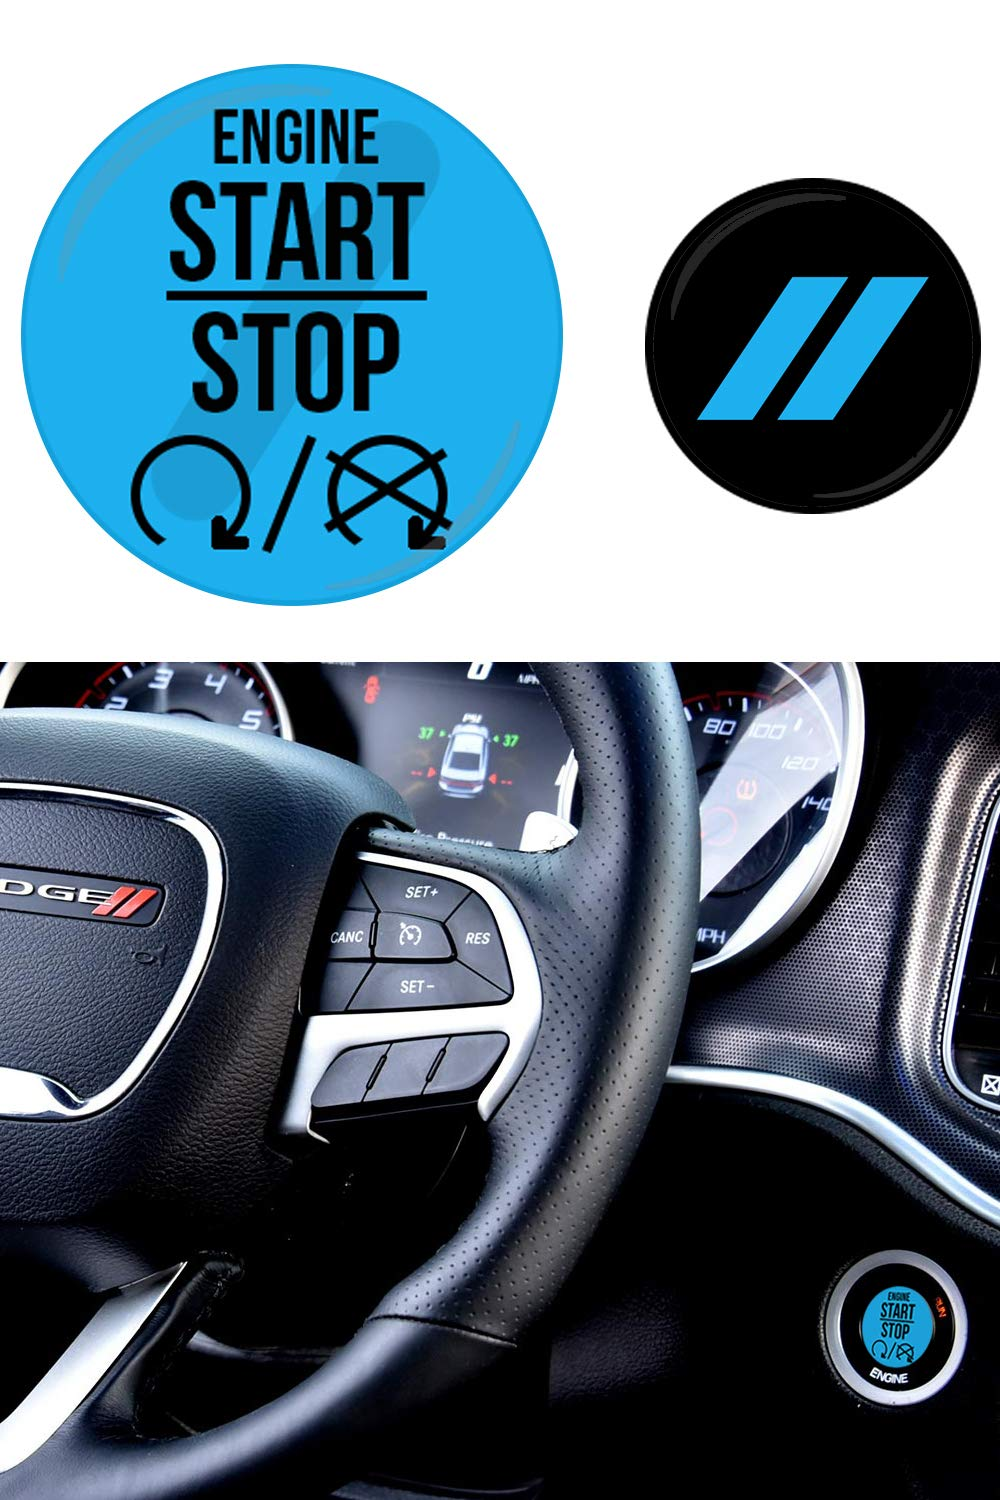 redred JDL Autoworks compatible with 2015-2019 Dodge Charger//Challenger Starter Button Decal Overlay Push to Start Button Badge Cover Accessories 3D Domed SRT Style Red Start Stop Sticker Emblem